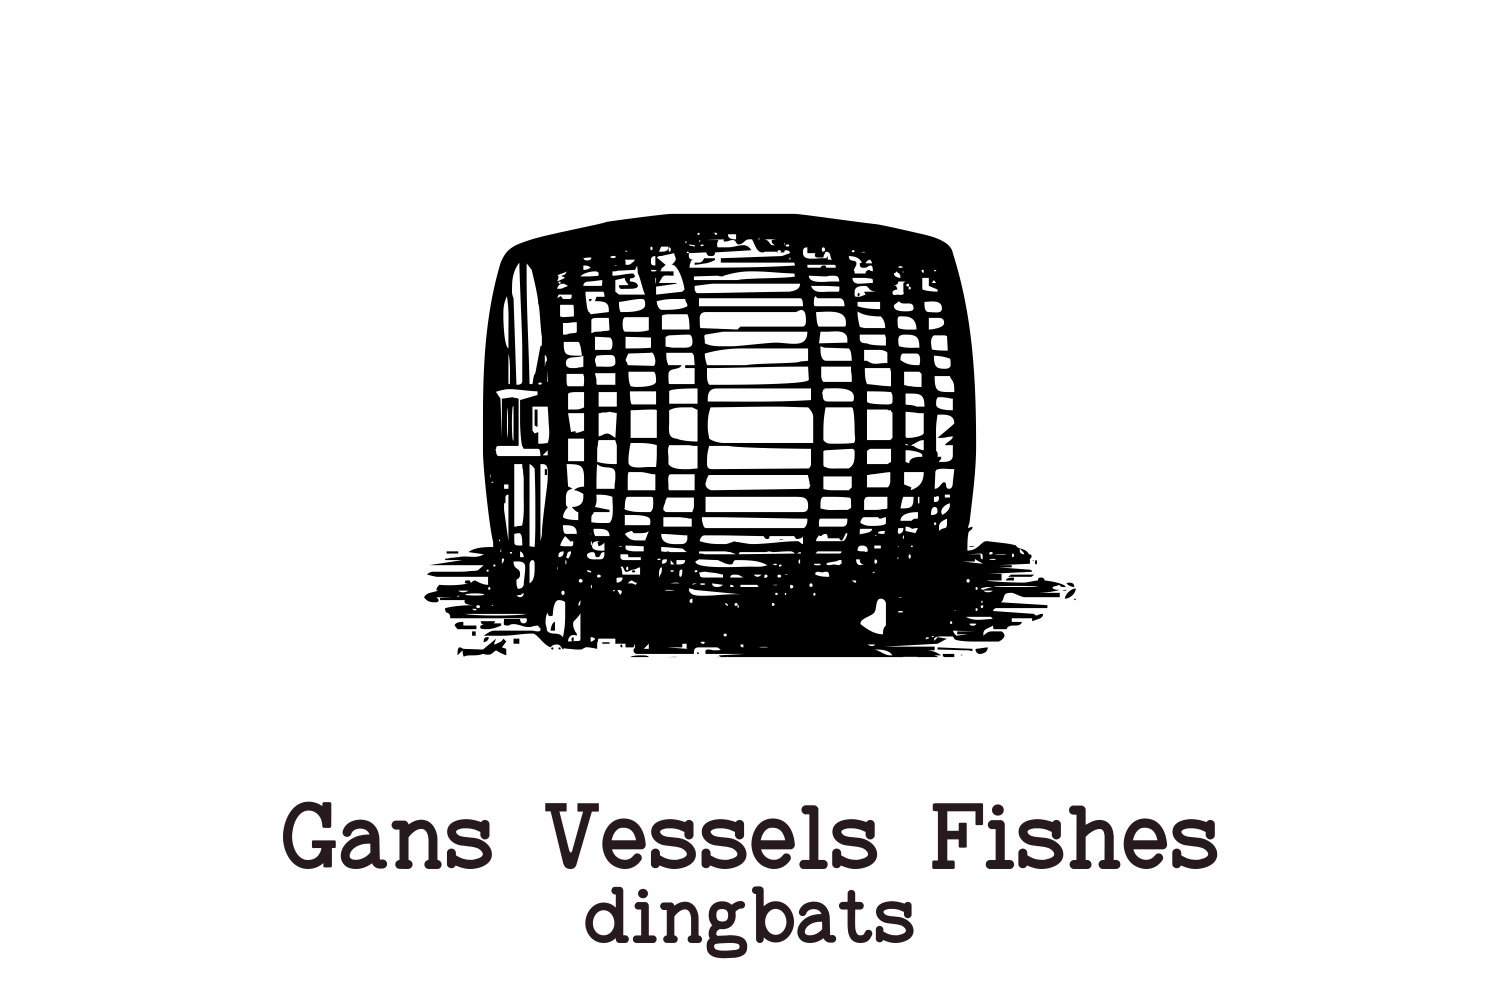 Gans Vessels Fishes example image 3